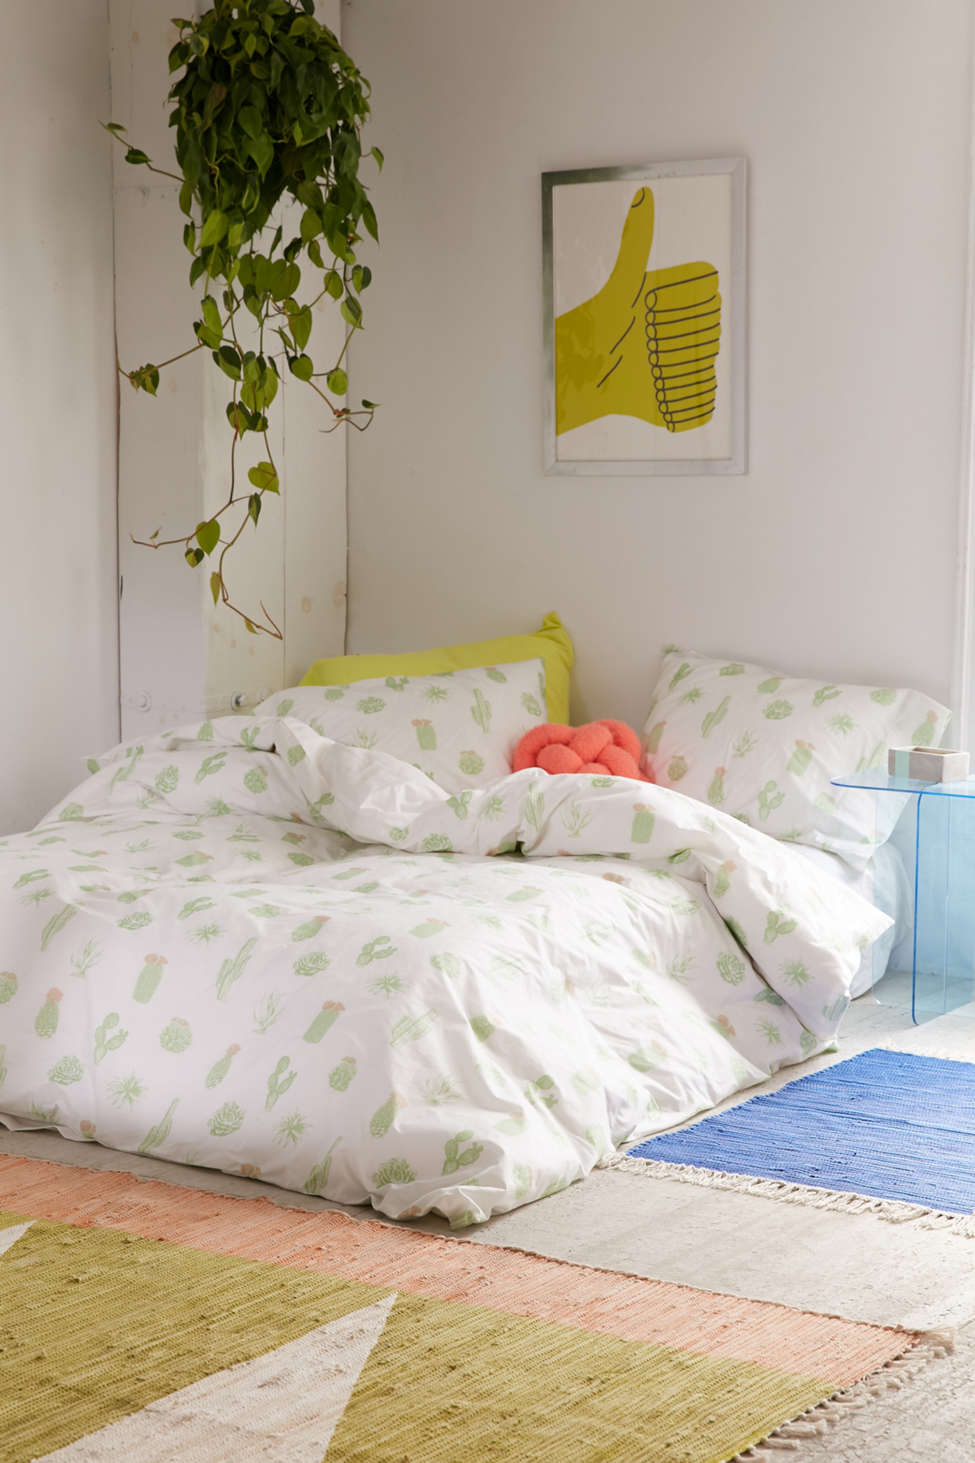 Slide View: 1: Cactus Icon Duvet Cover